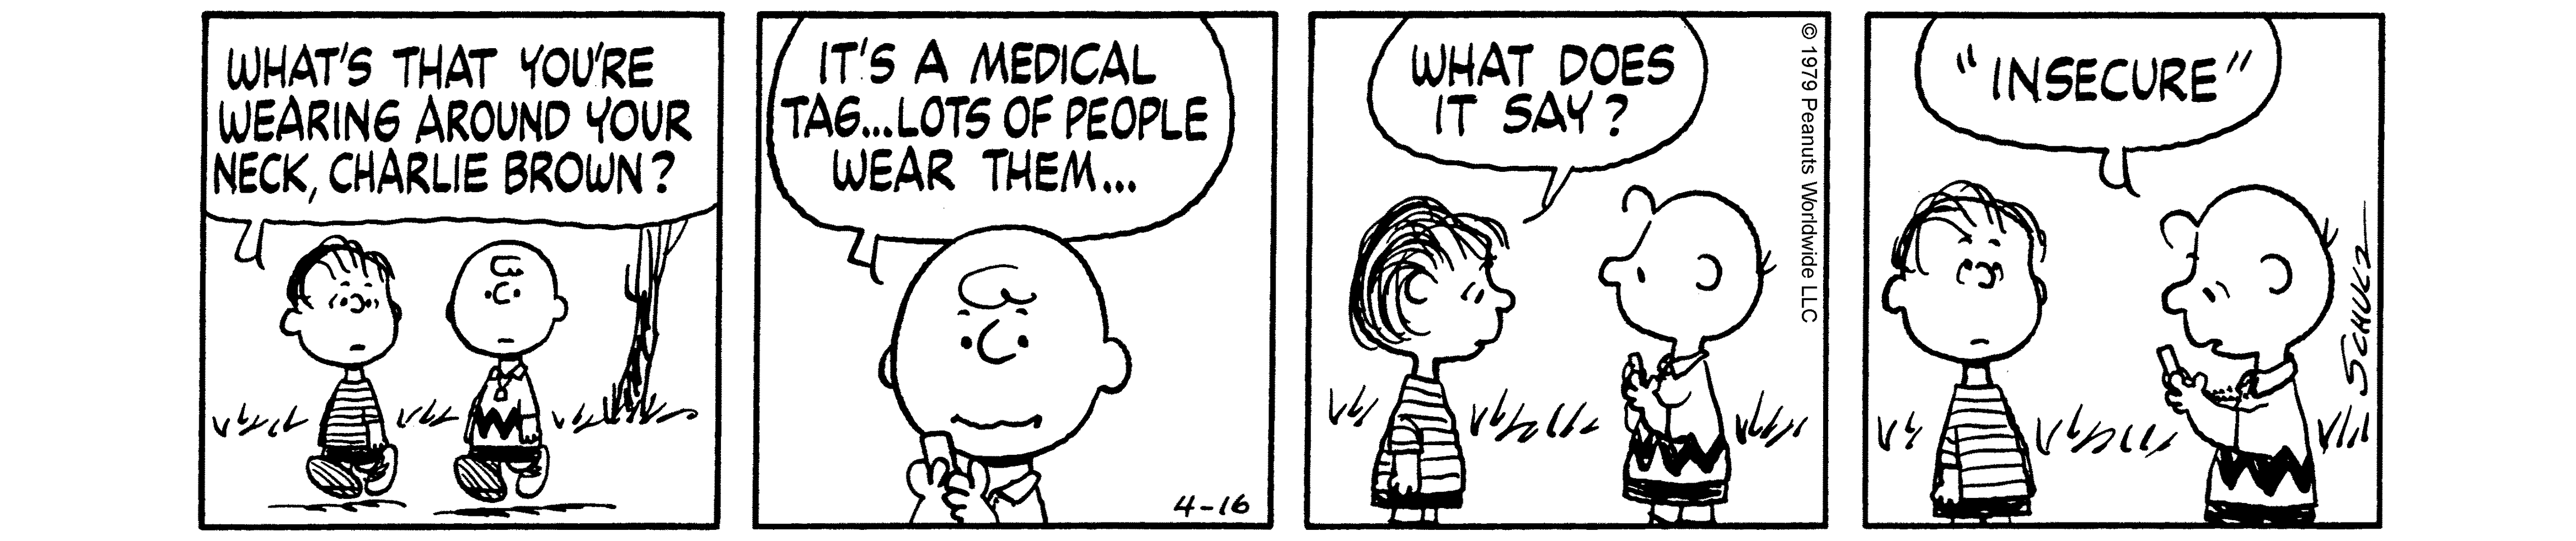 A black and white comic strip of two boys facing each other and talking.